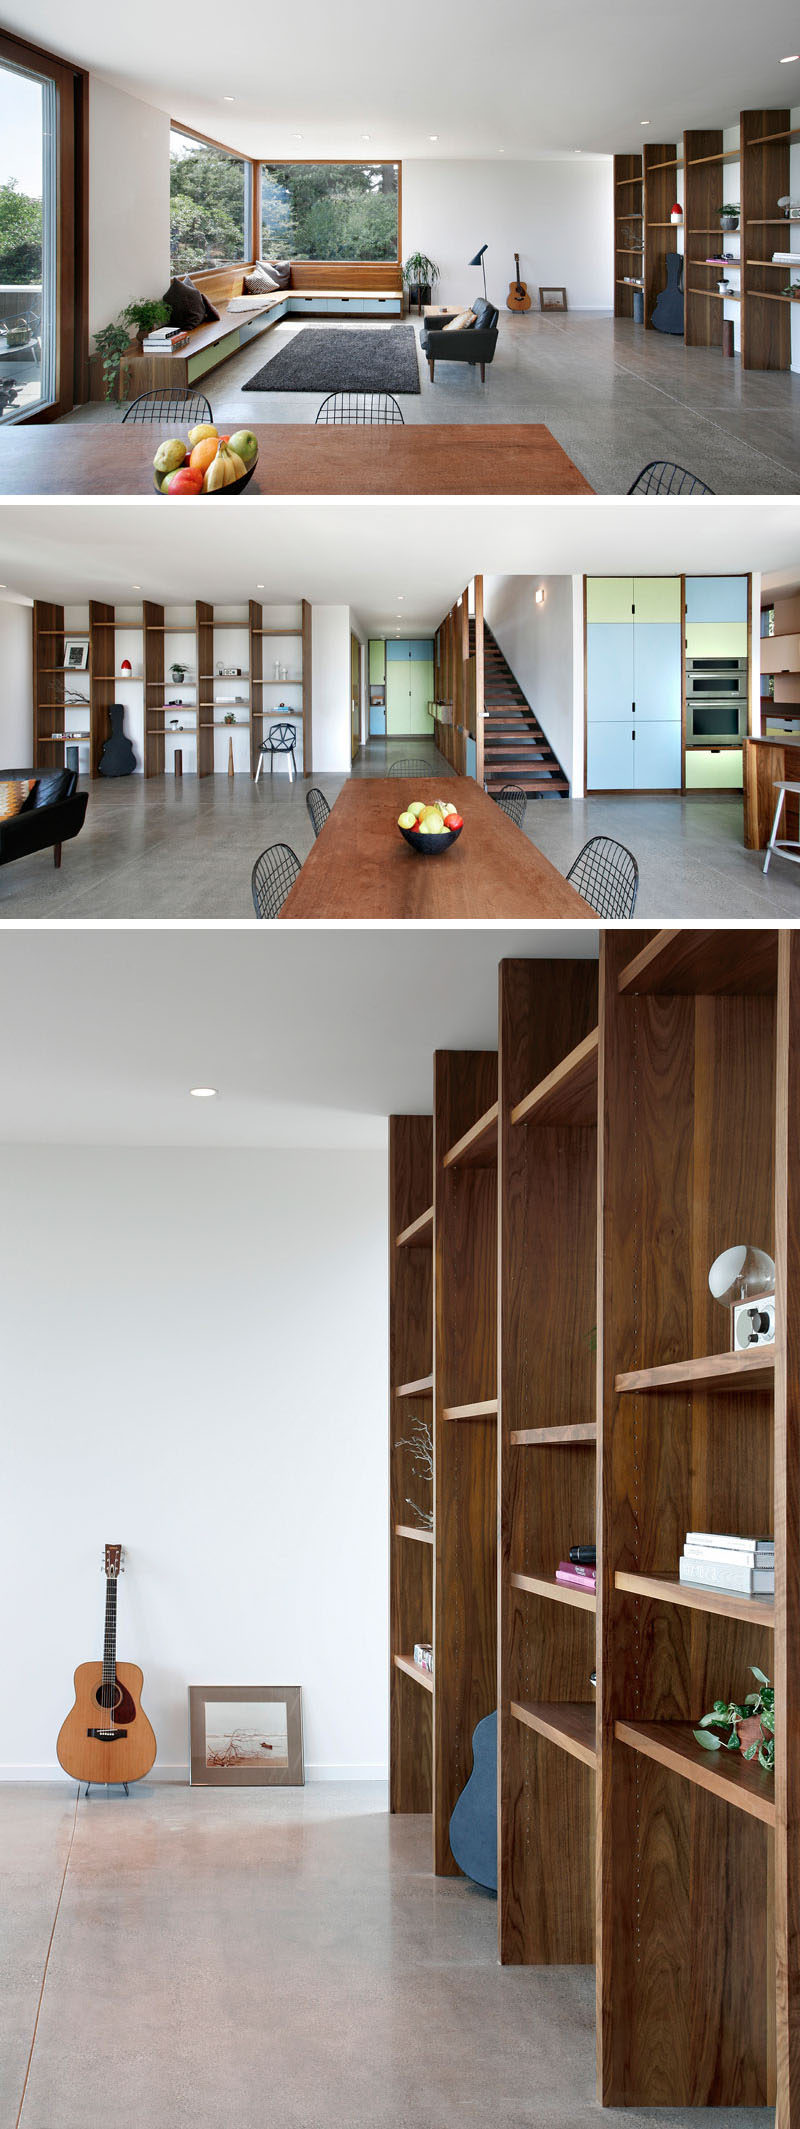 In this modern house, the living room, dining area and kitchen all share the same space, with the living room at one end and the kitchen at the other. Built-in wood benches sit underneath large windows, while a wood shelving unit lines the wall. #InteriorDesign #LivingRoom #Shelving